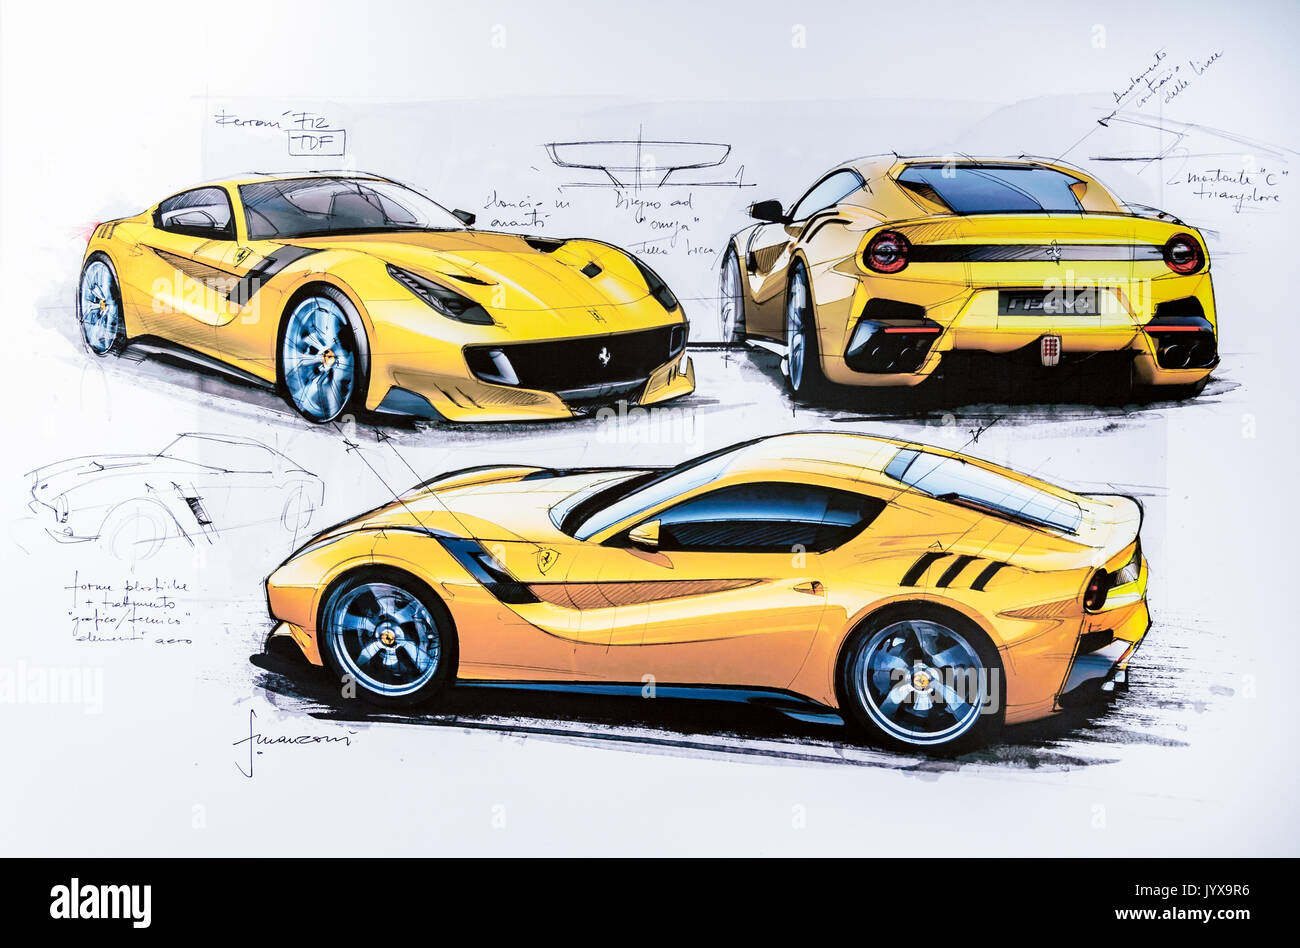 Ferrari F12 Interior >> Ferrari F12 Stock Photos & Ferrari F12 Stock Images - Alamy